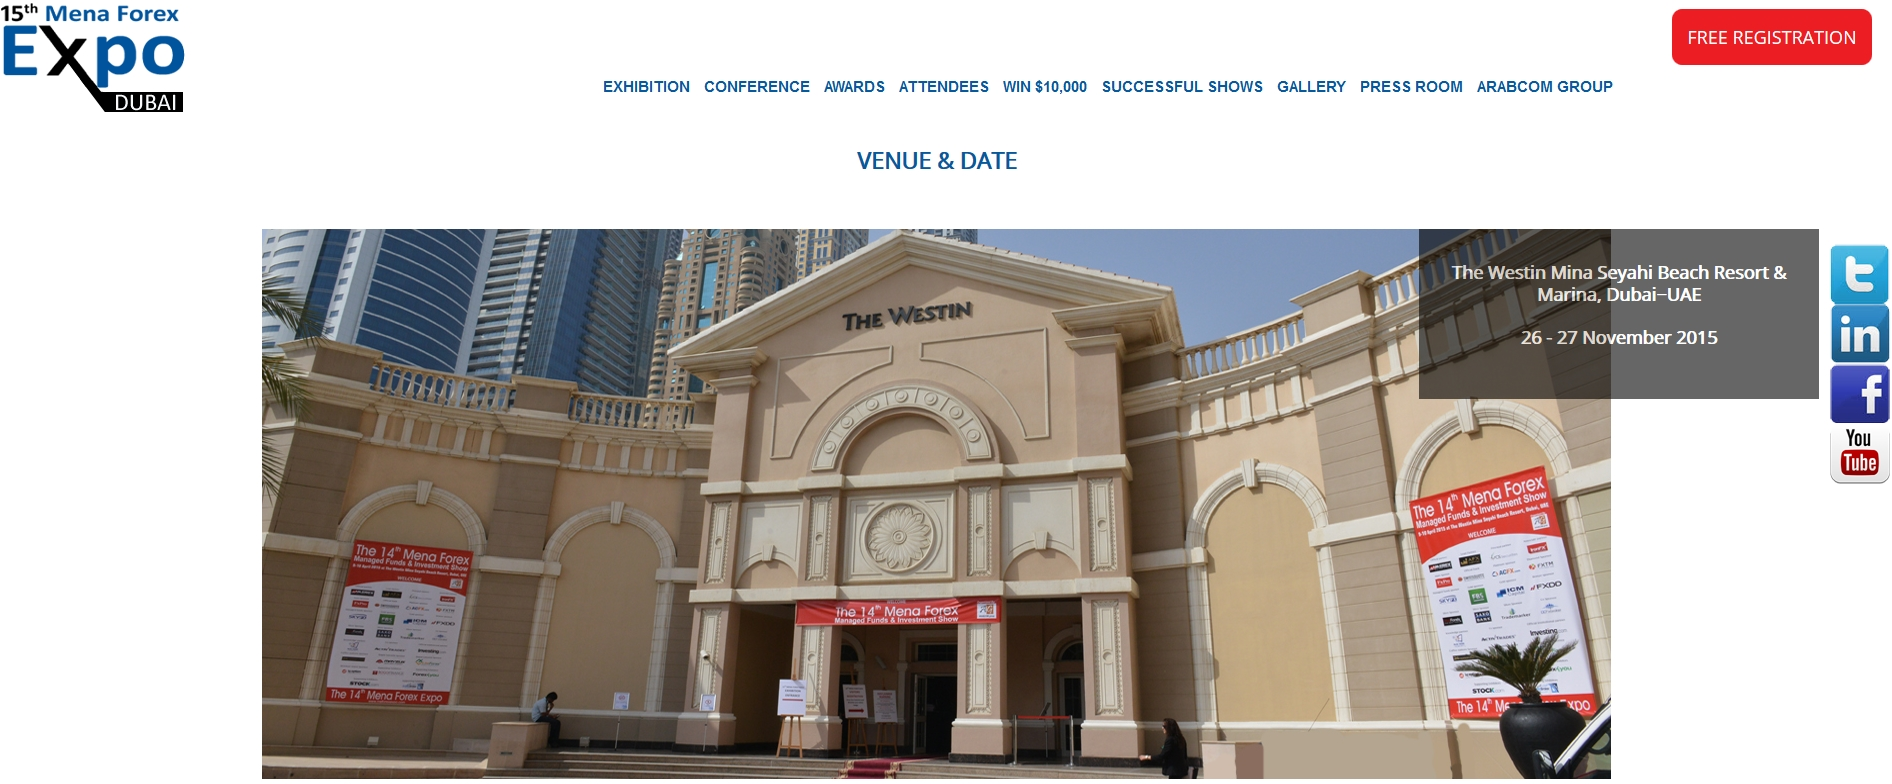 I AM GOING TO ATTEND 15th MENA FOREX EXPO 2015 ON COMING NOV 26& 27